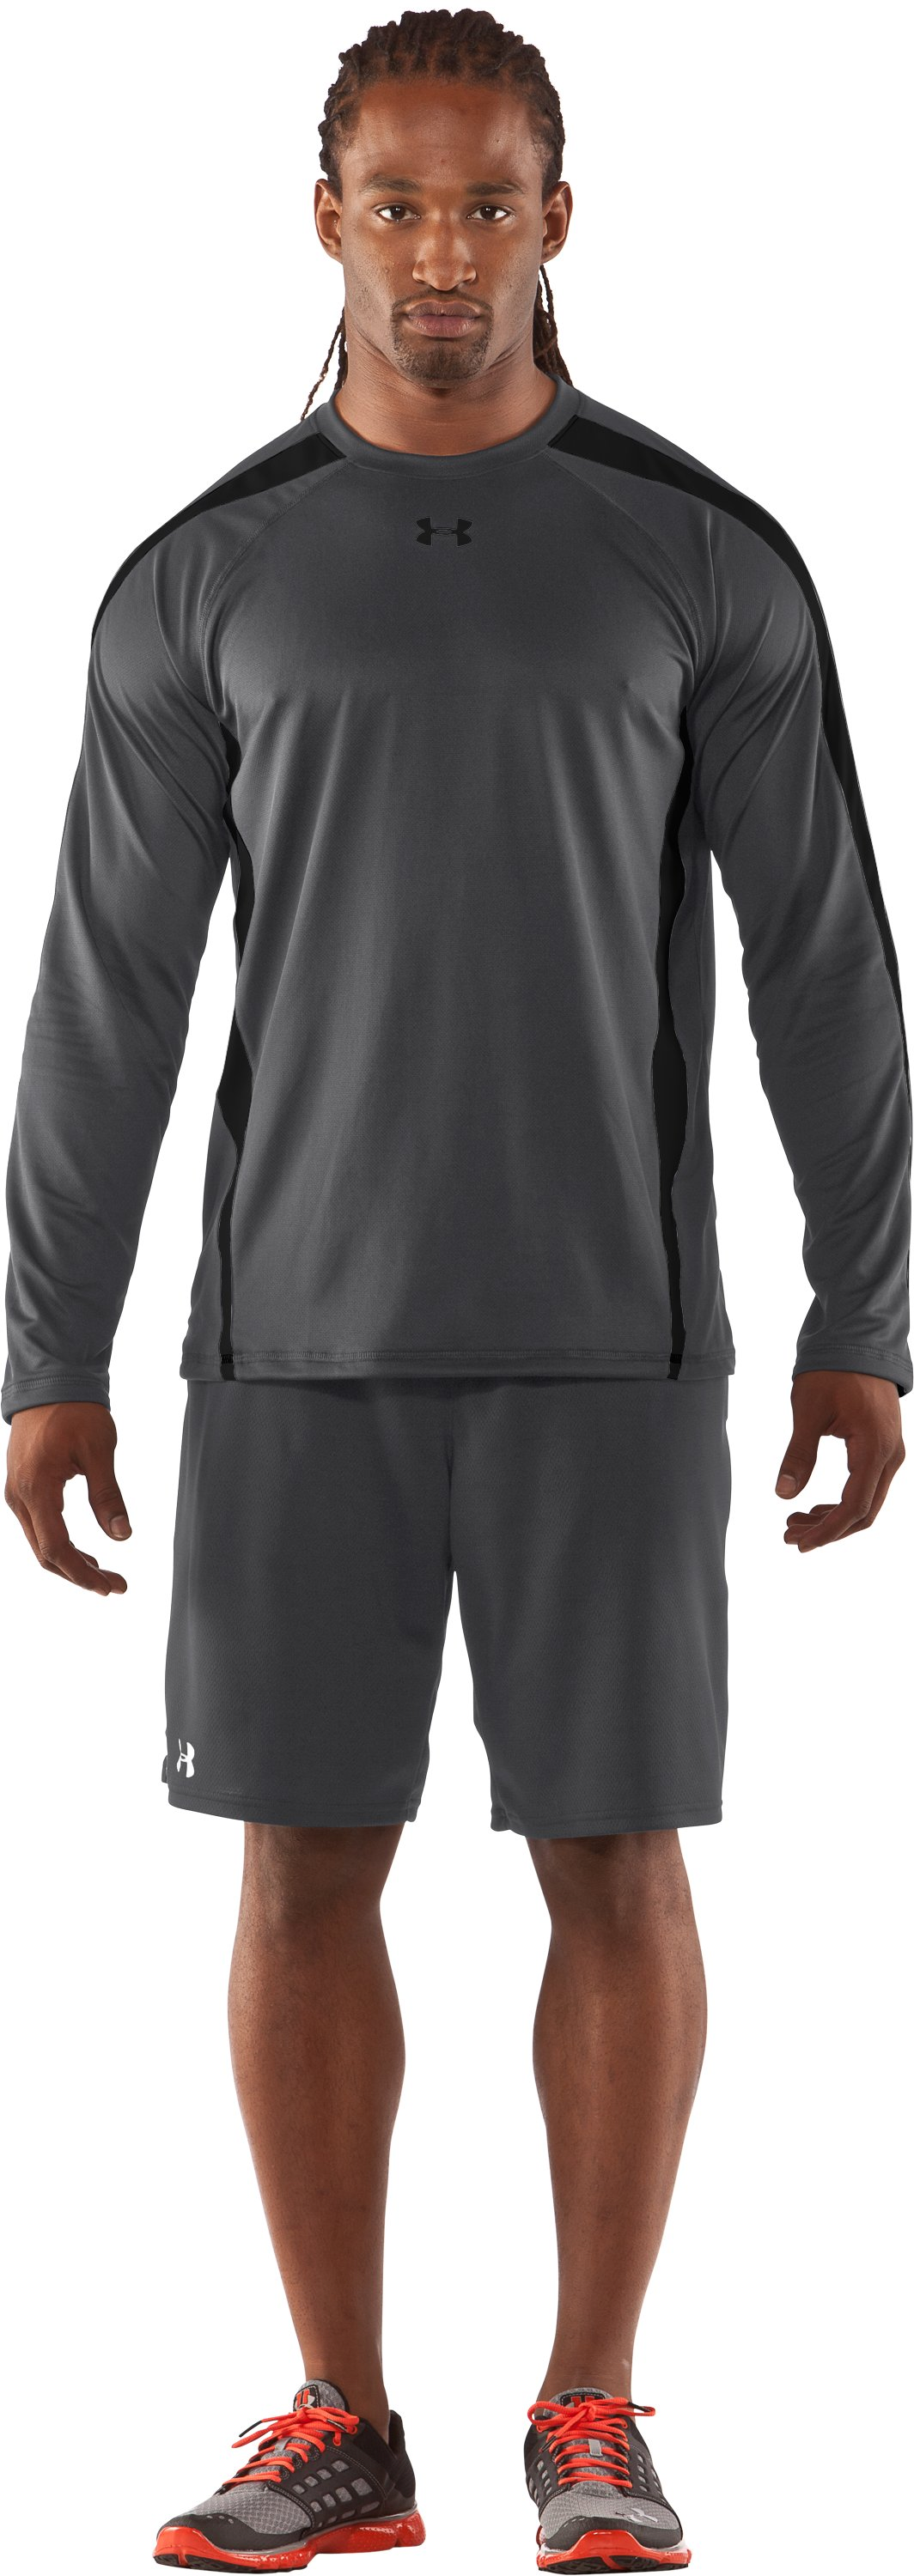 Men's UA Zone IV Long Sleeve T-Shirt, Graphite